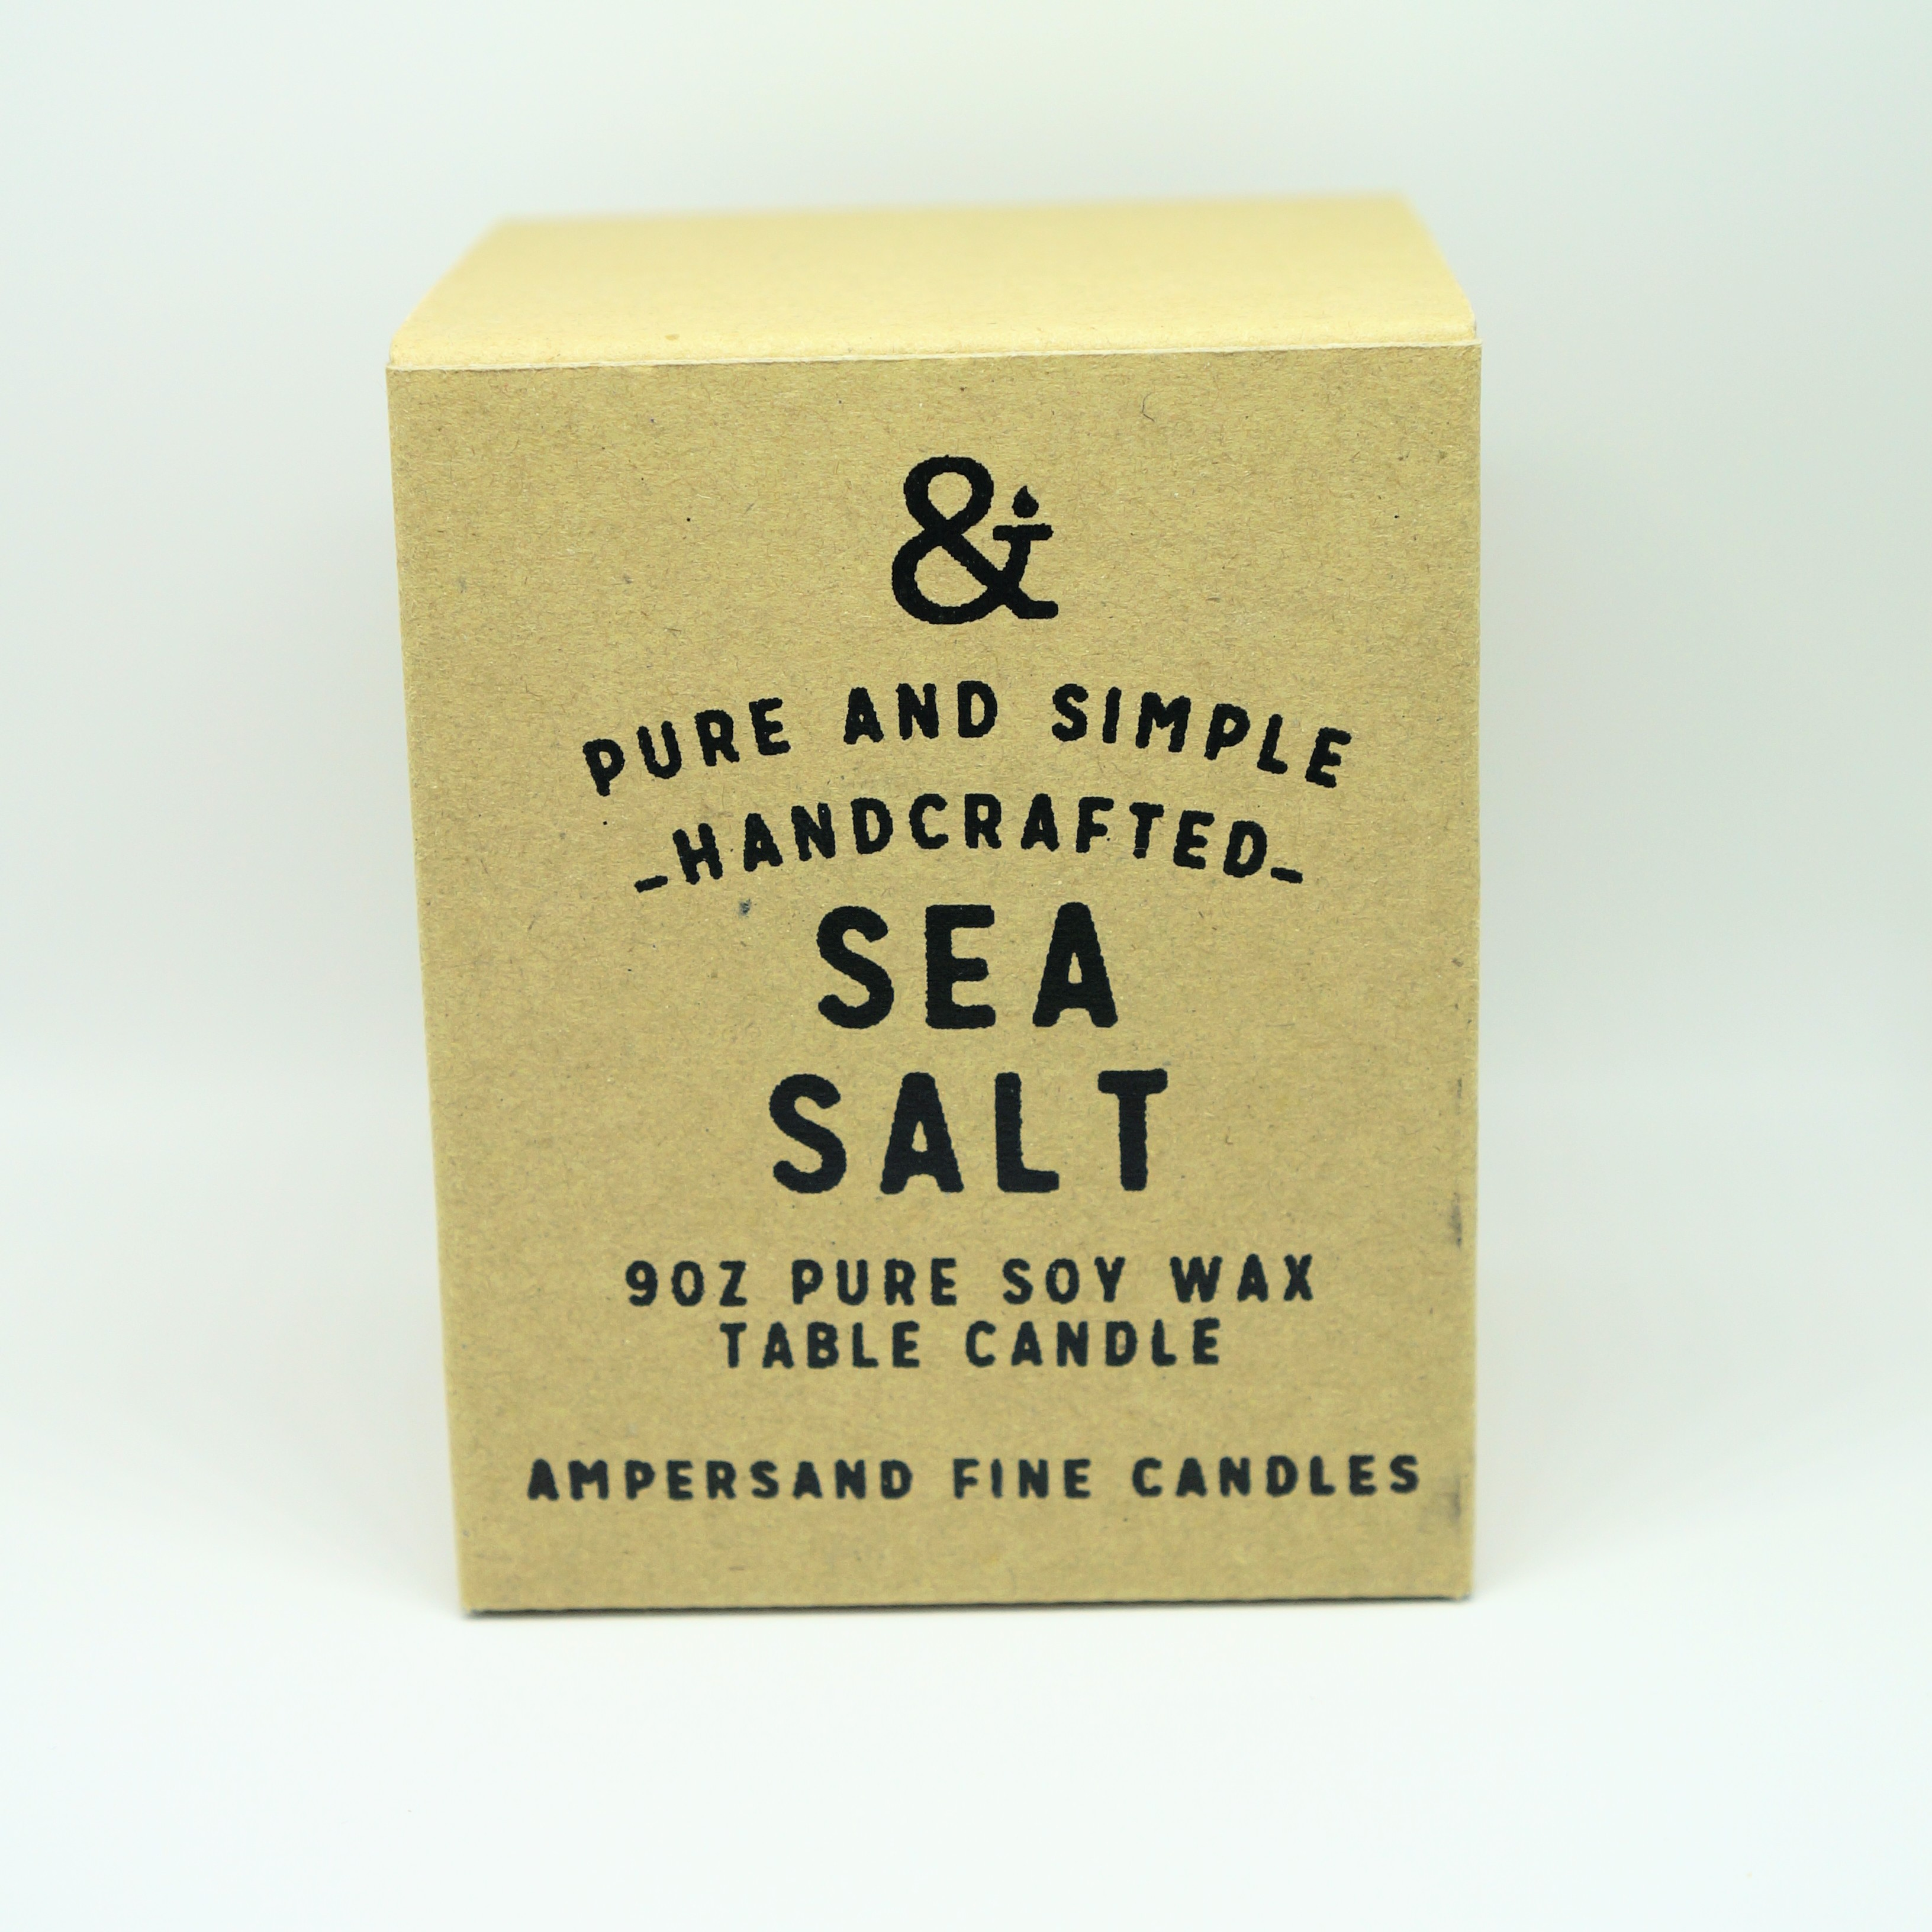 9oz Amber Jar Candle -SEA SALT- キャンドル Candles - 画像1